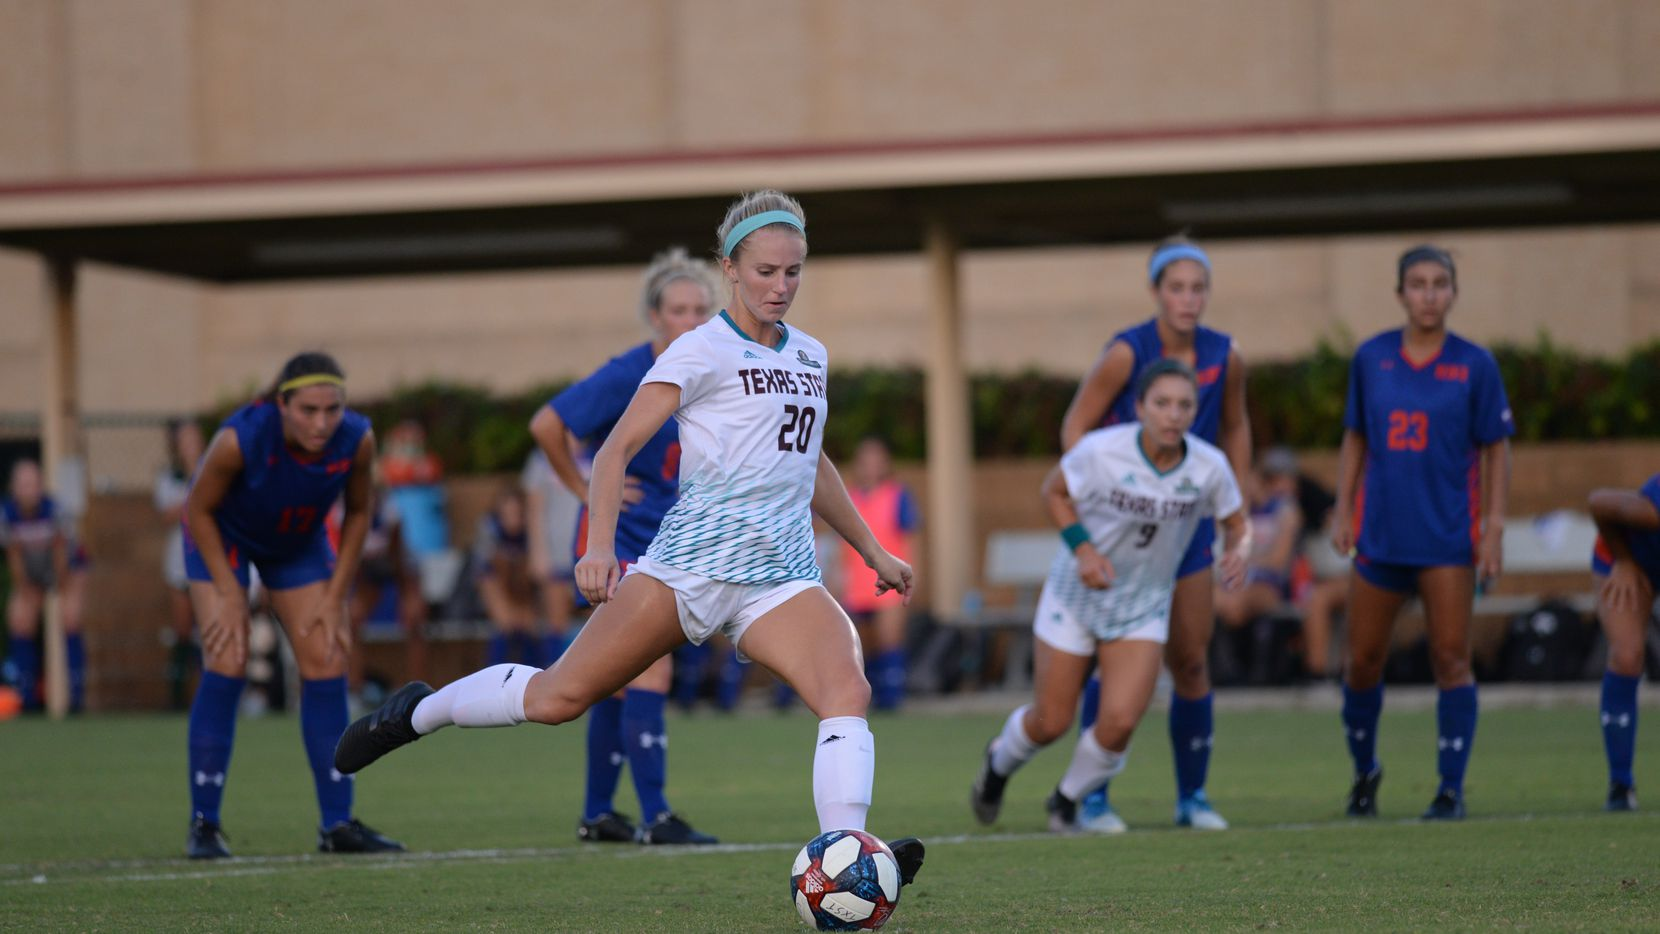 Kaylee Davis, of Allen, will live in Subotica, Serbia through November with the ZFK Spartak professional women's soccer team.